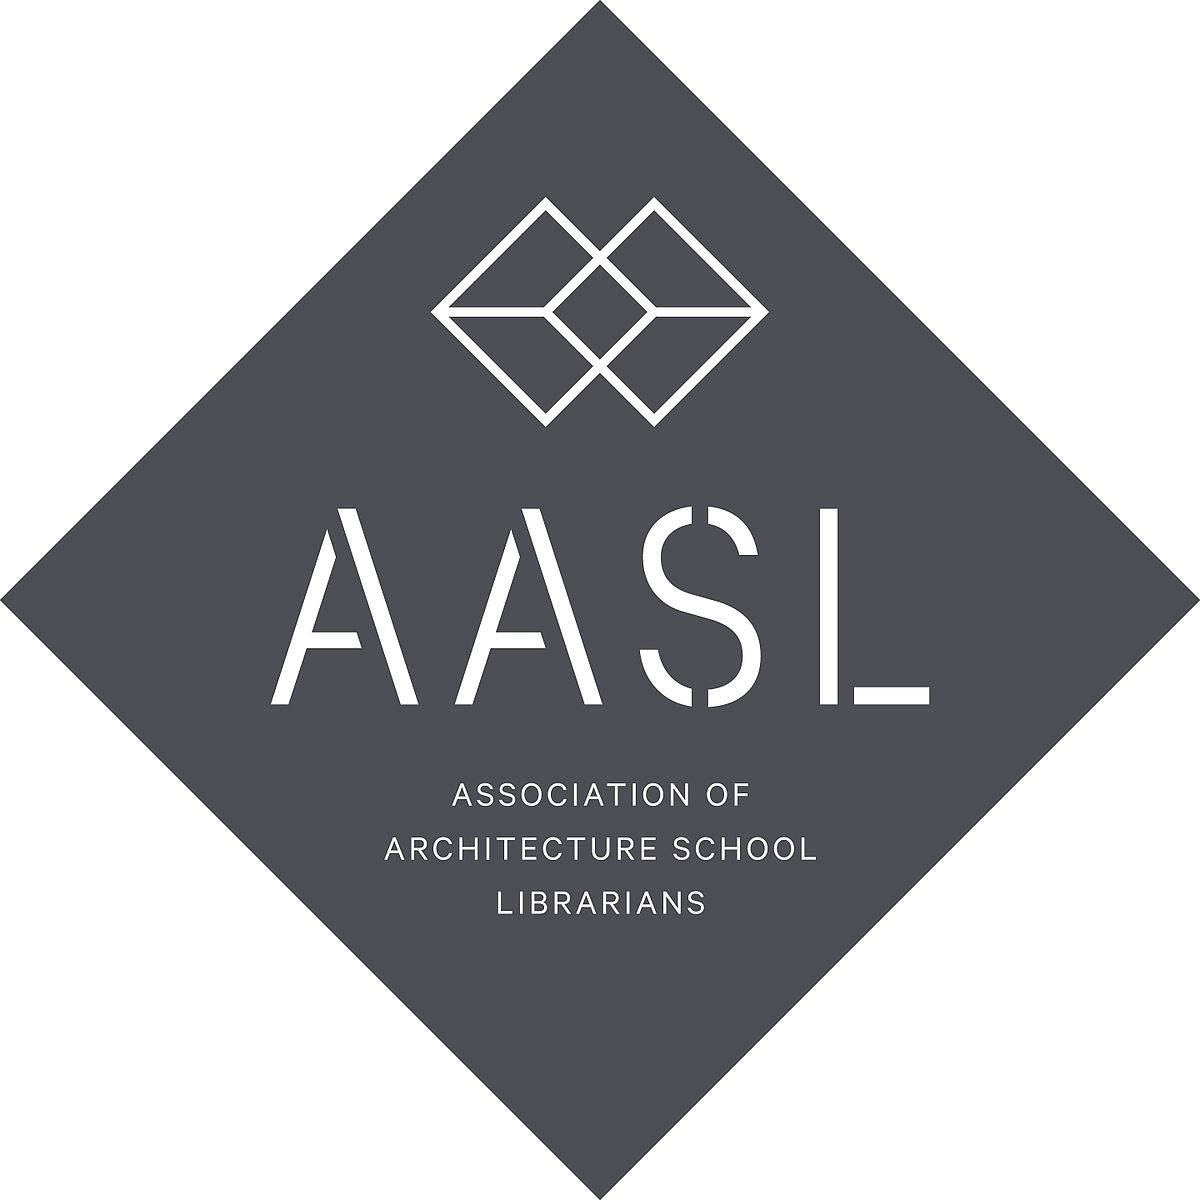 association of architecture school librarians - wikipedia